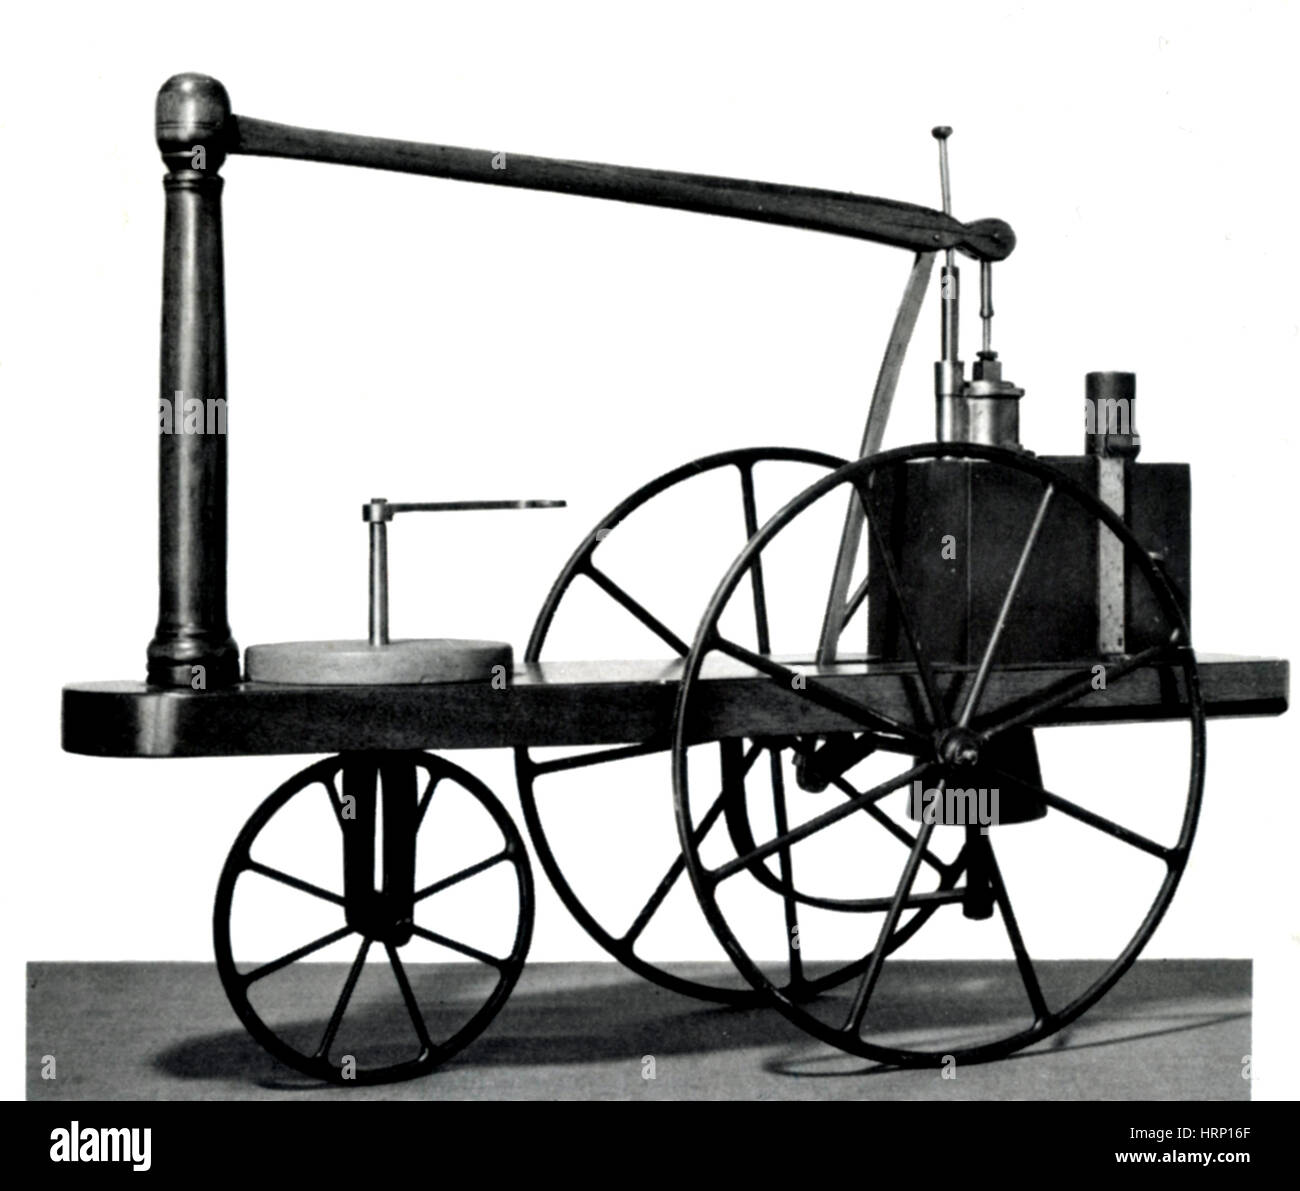 Murdoch Steam Carriage, 1784 - Stock Image